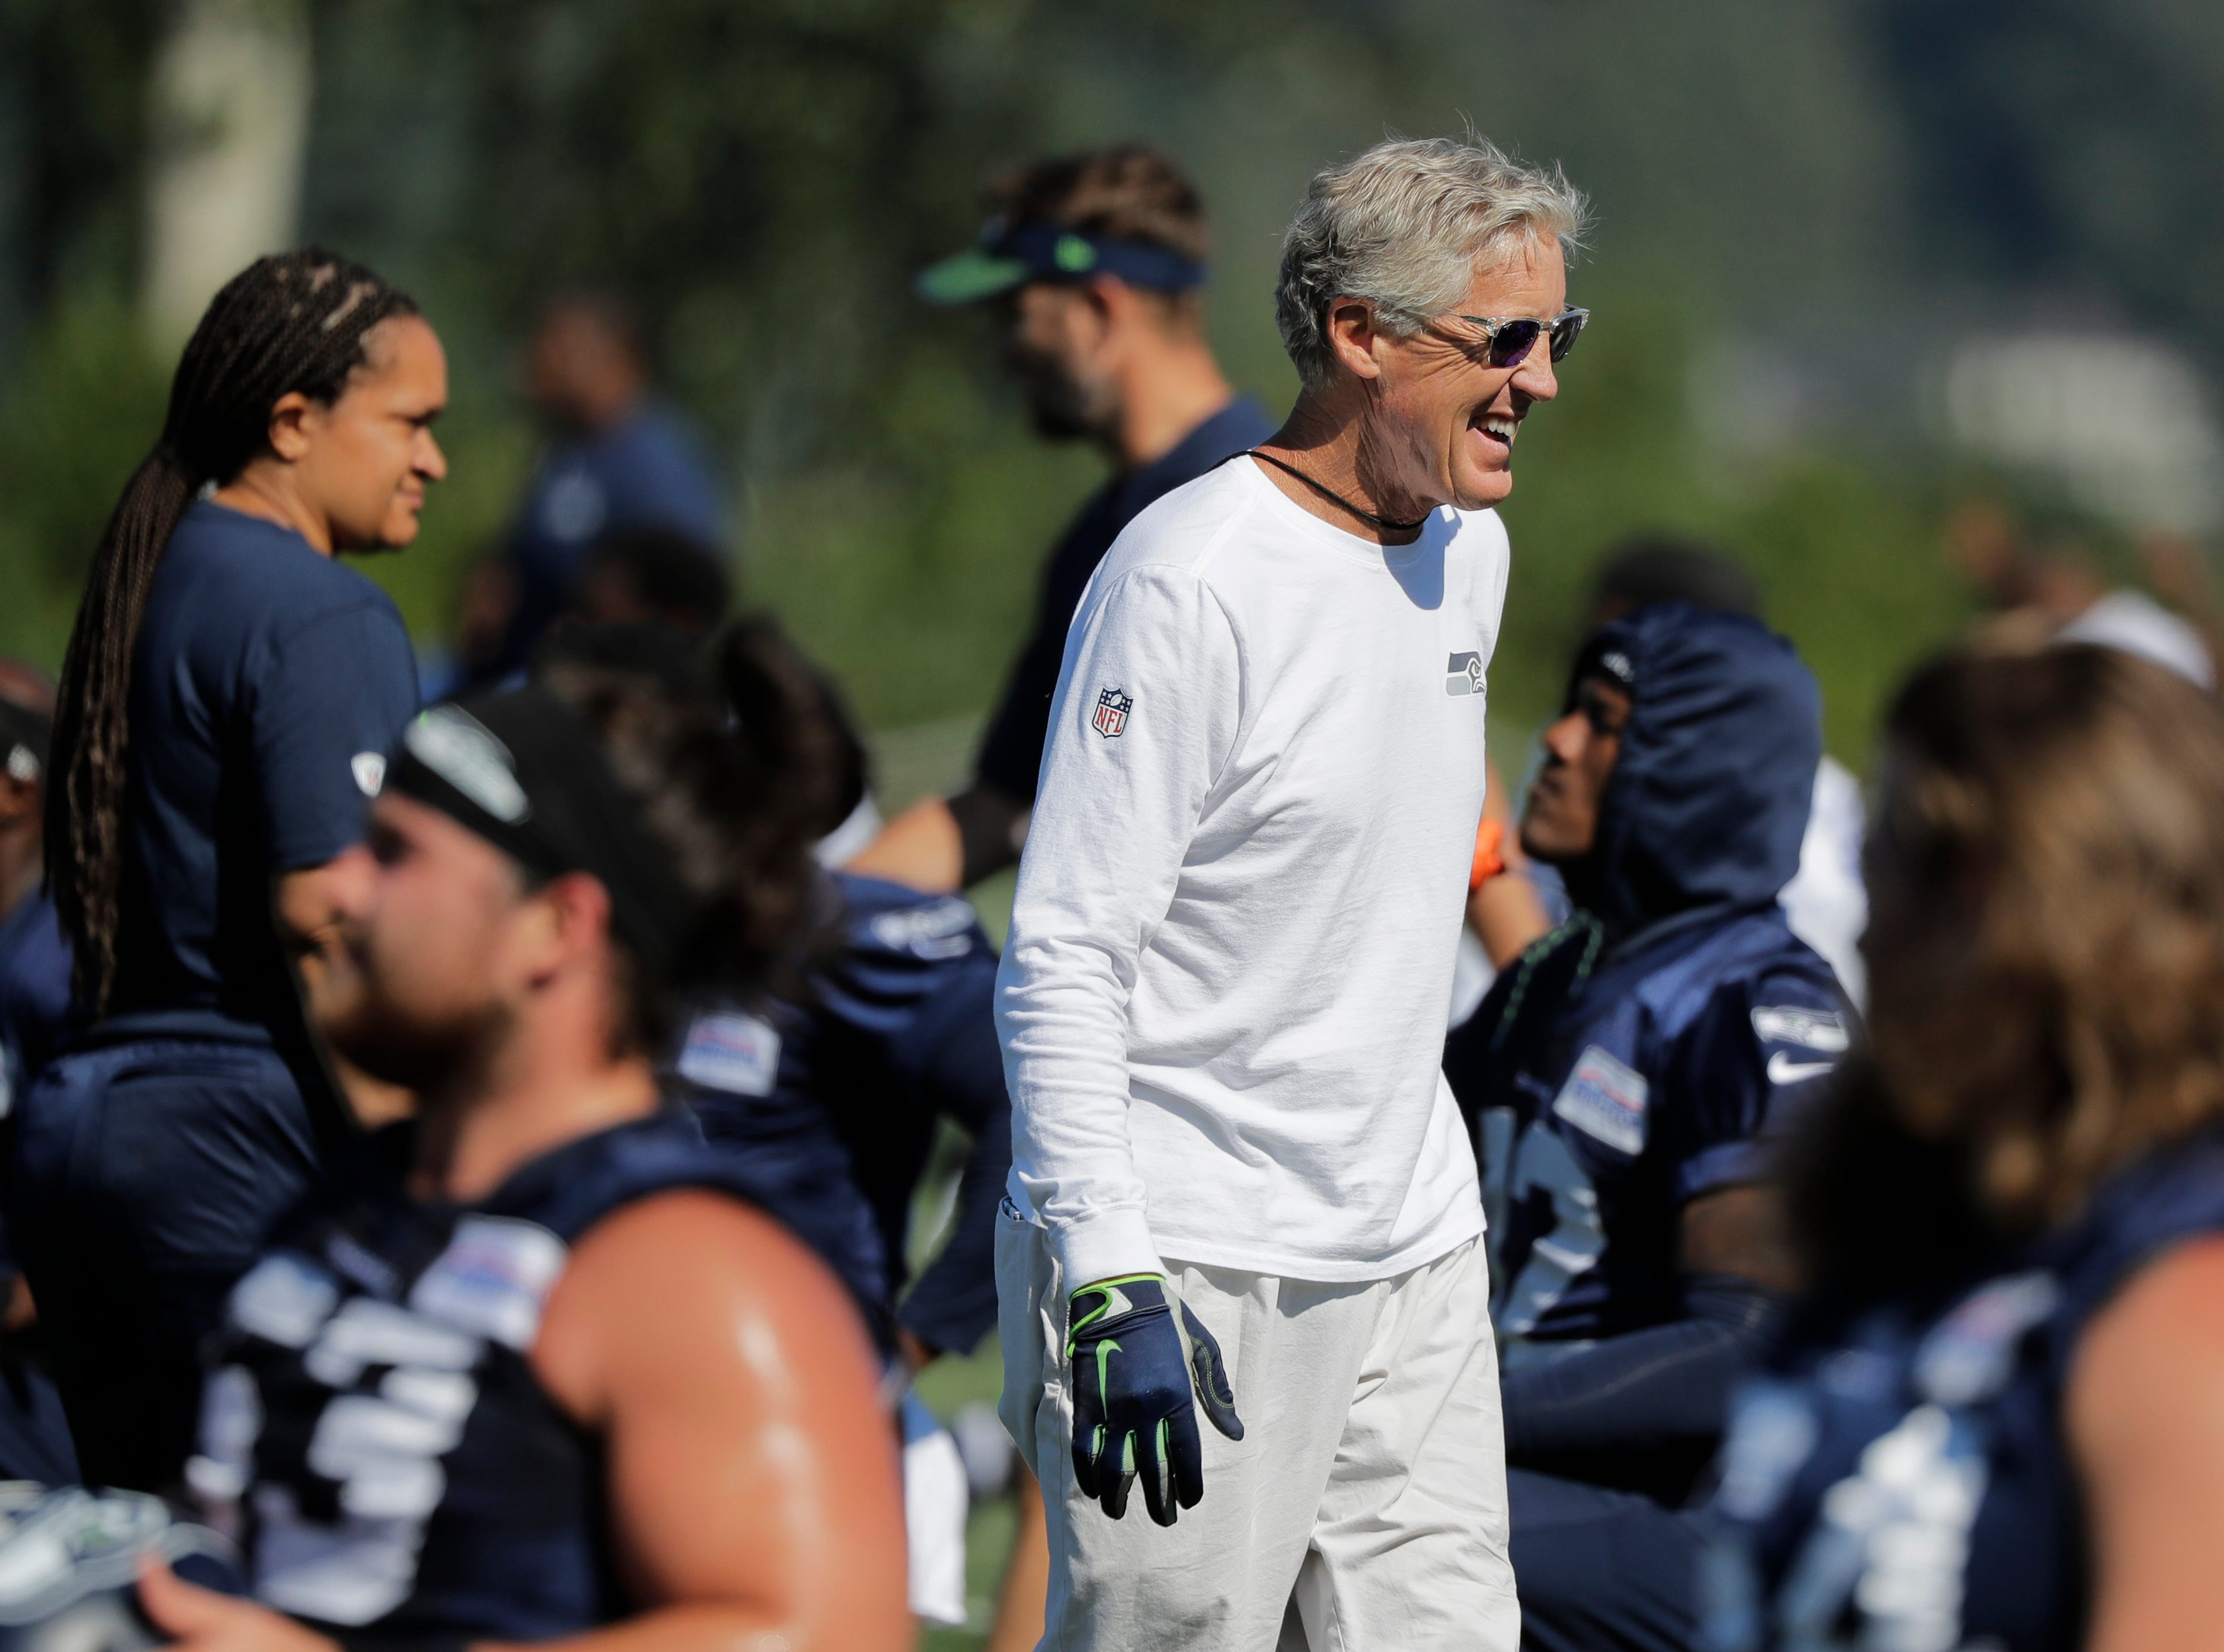 Seattle Seahawks head coach Pete Carroll smiles and he greets players at NFL football training camp, Thursday, July 26, 2018, in Renton, Wash. (AP Photo/Ted S. Warren)